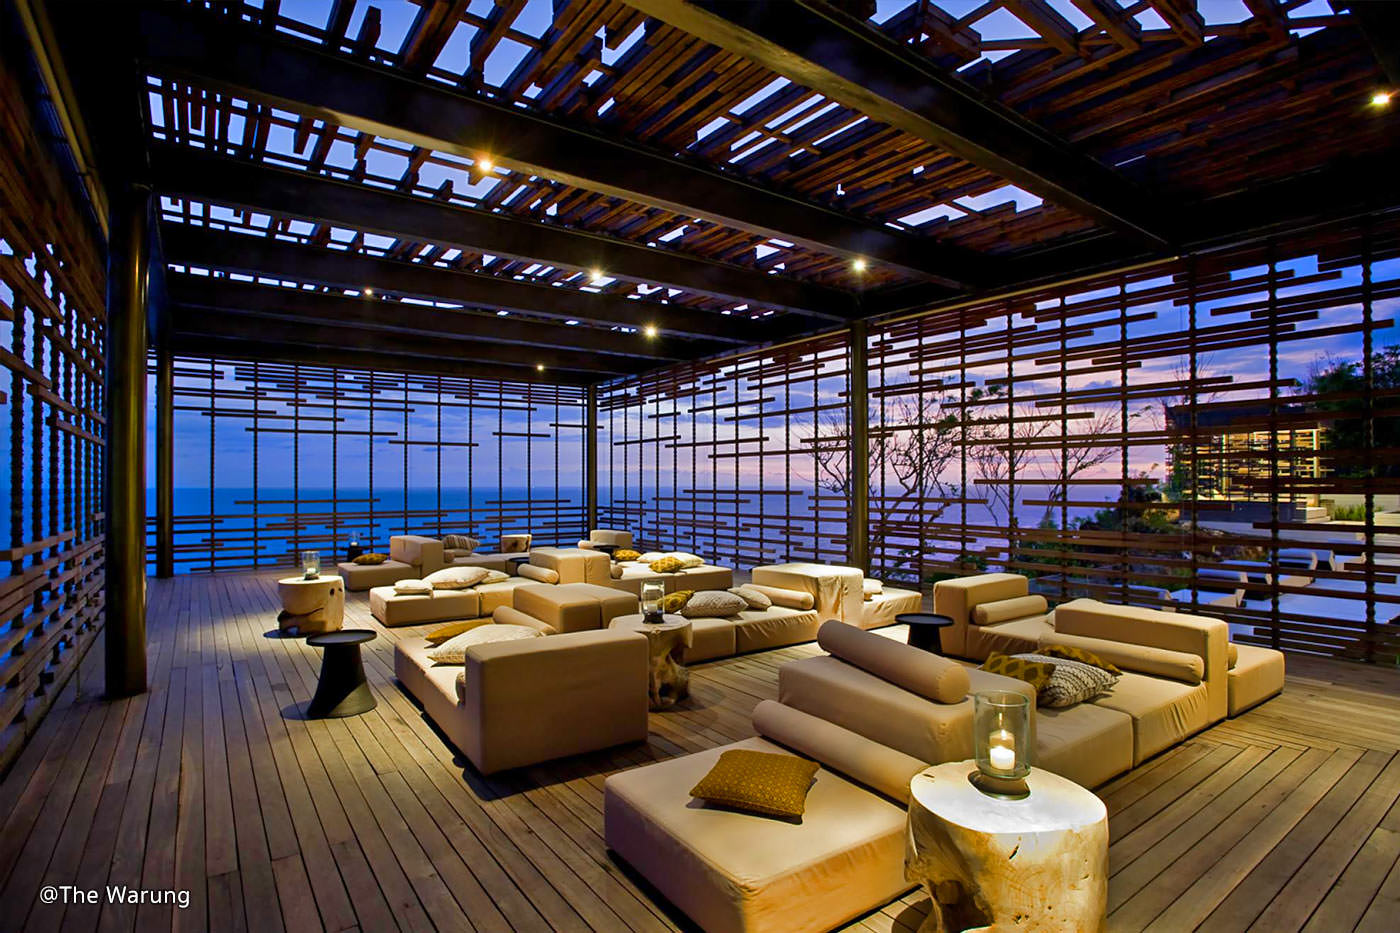 Took this off their own website, so you can see the lounge when it's not so dark. It's such a stunning lounge but too bad, we got there when it was dark already.